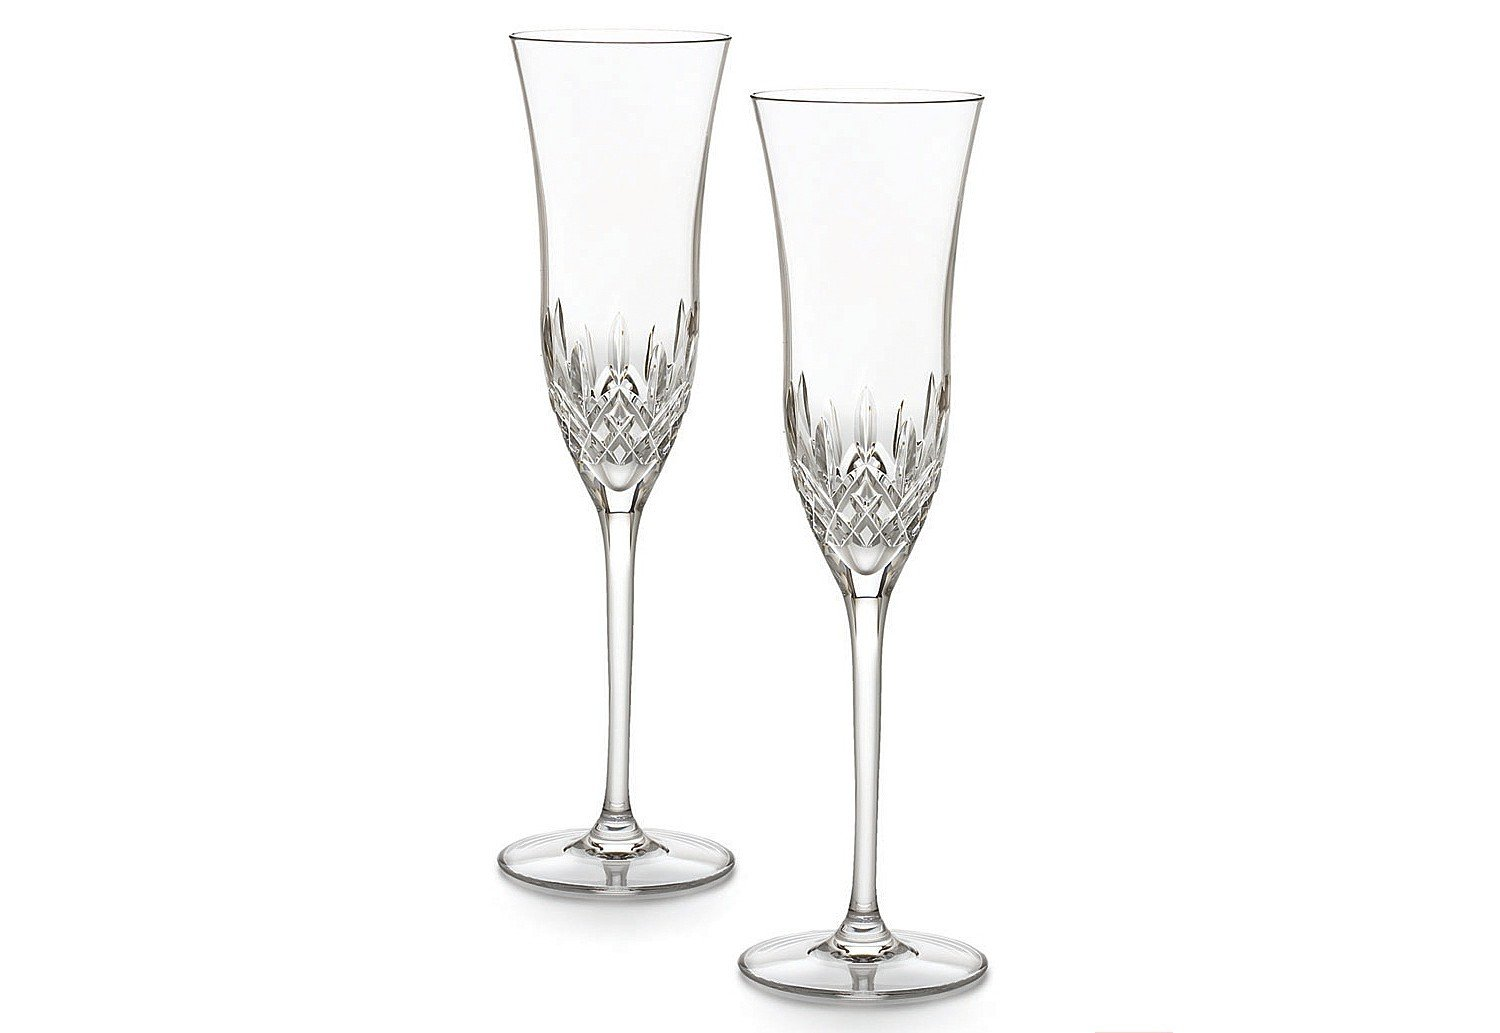 Waterford Crystal Lismore Essence Champagne Flute, Set of 2 143783